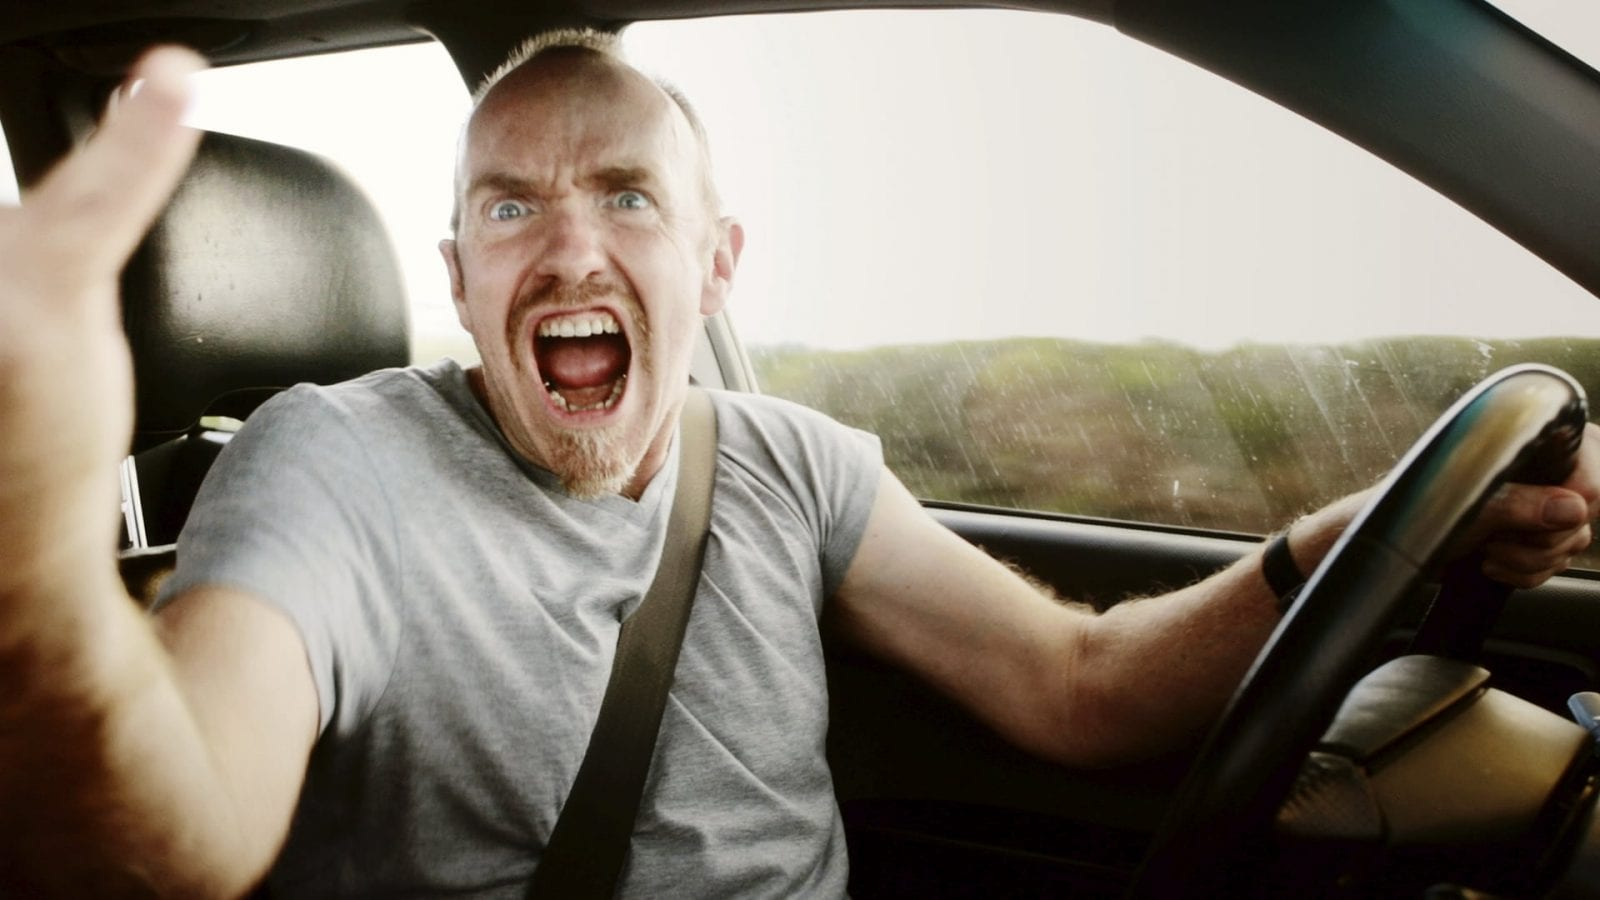 Angry Driver - Road Rage Stock Photo